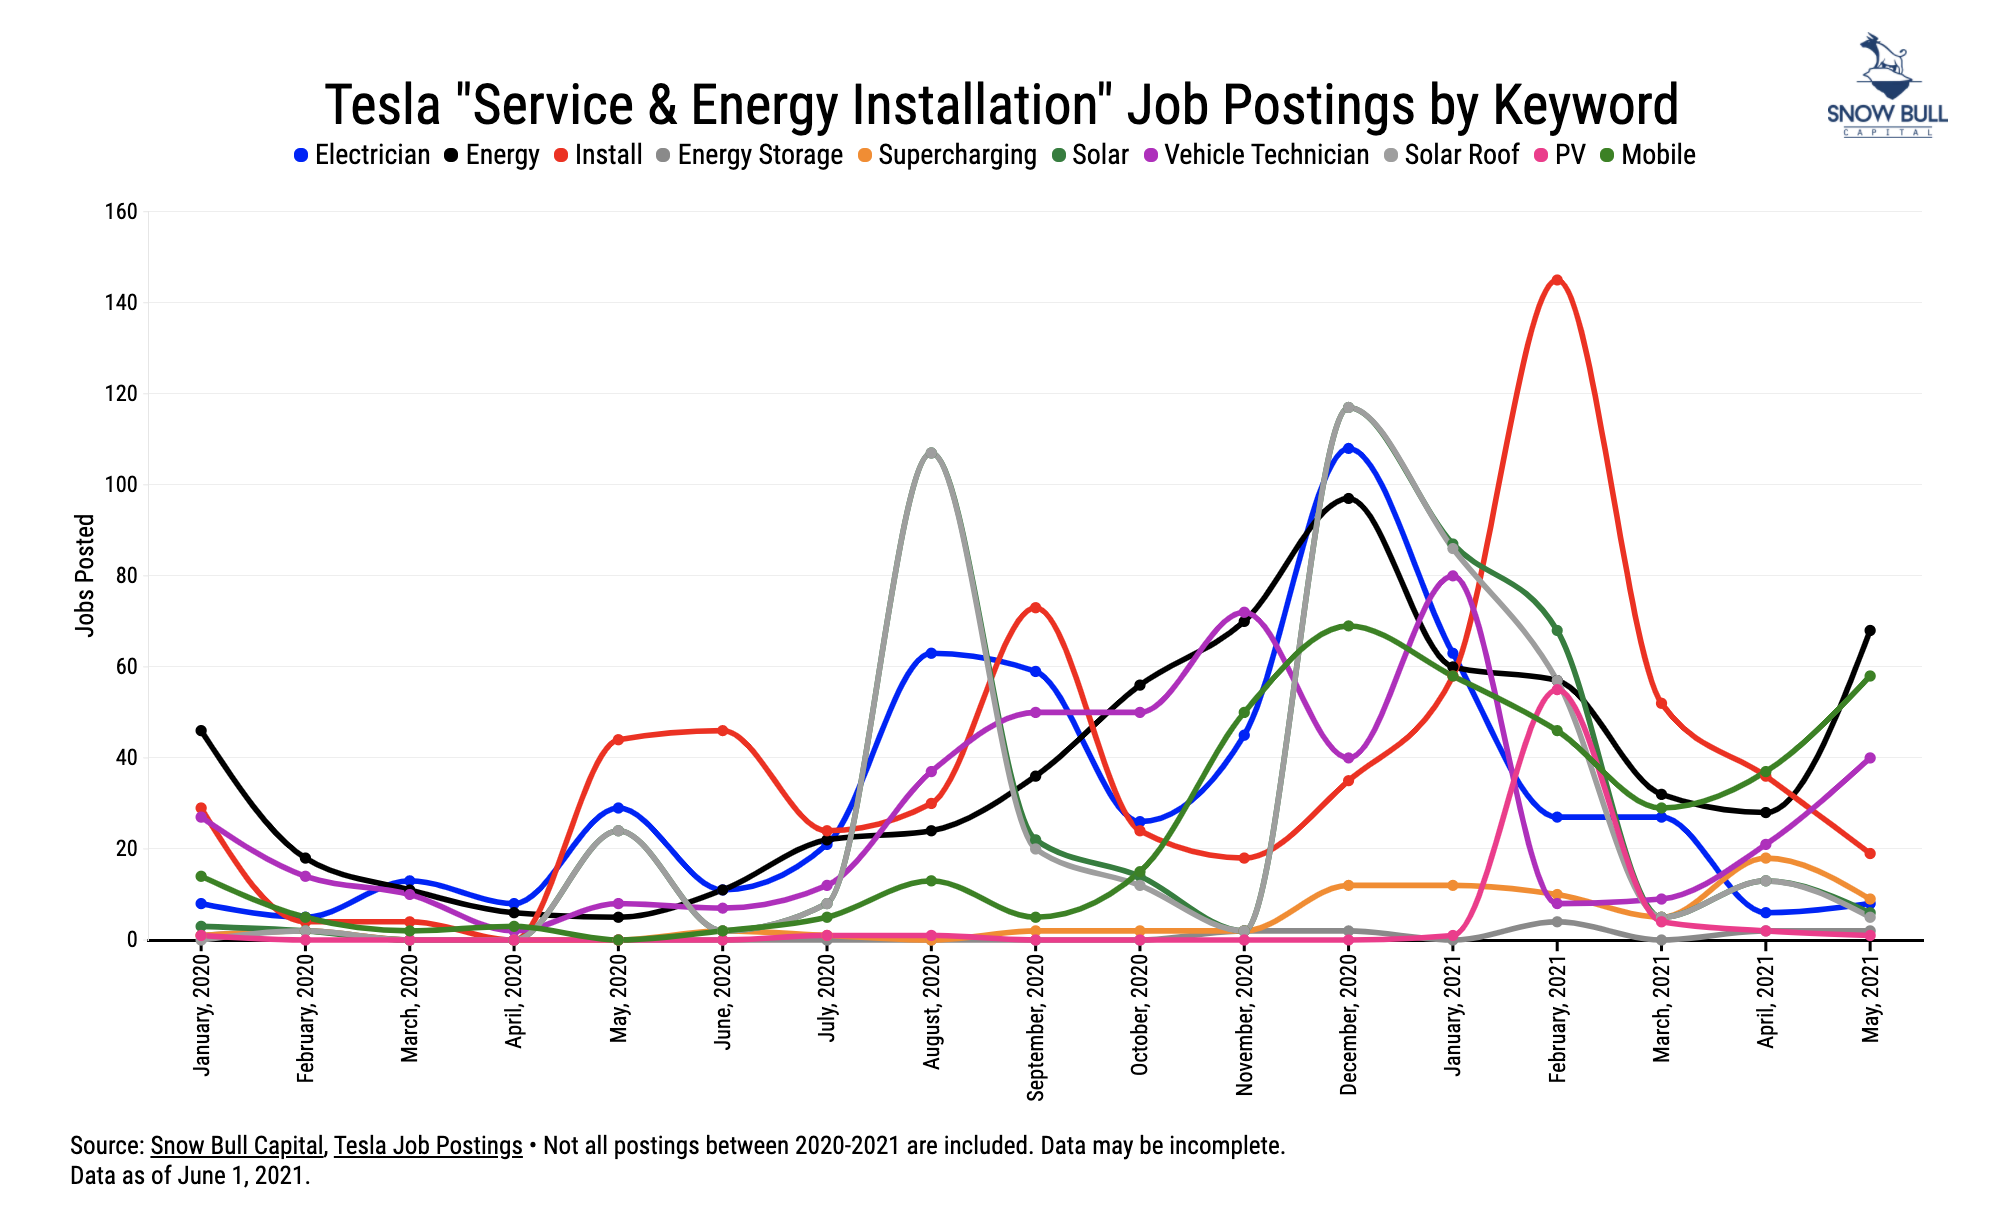 Tesla Jobs Postings by Keyword Chart courtesy of Snow Bull CleanTechnica